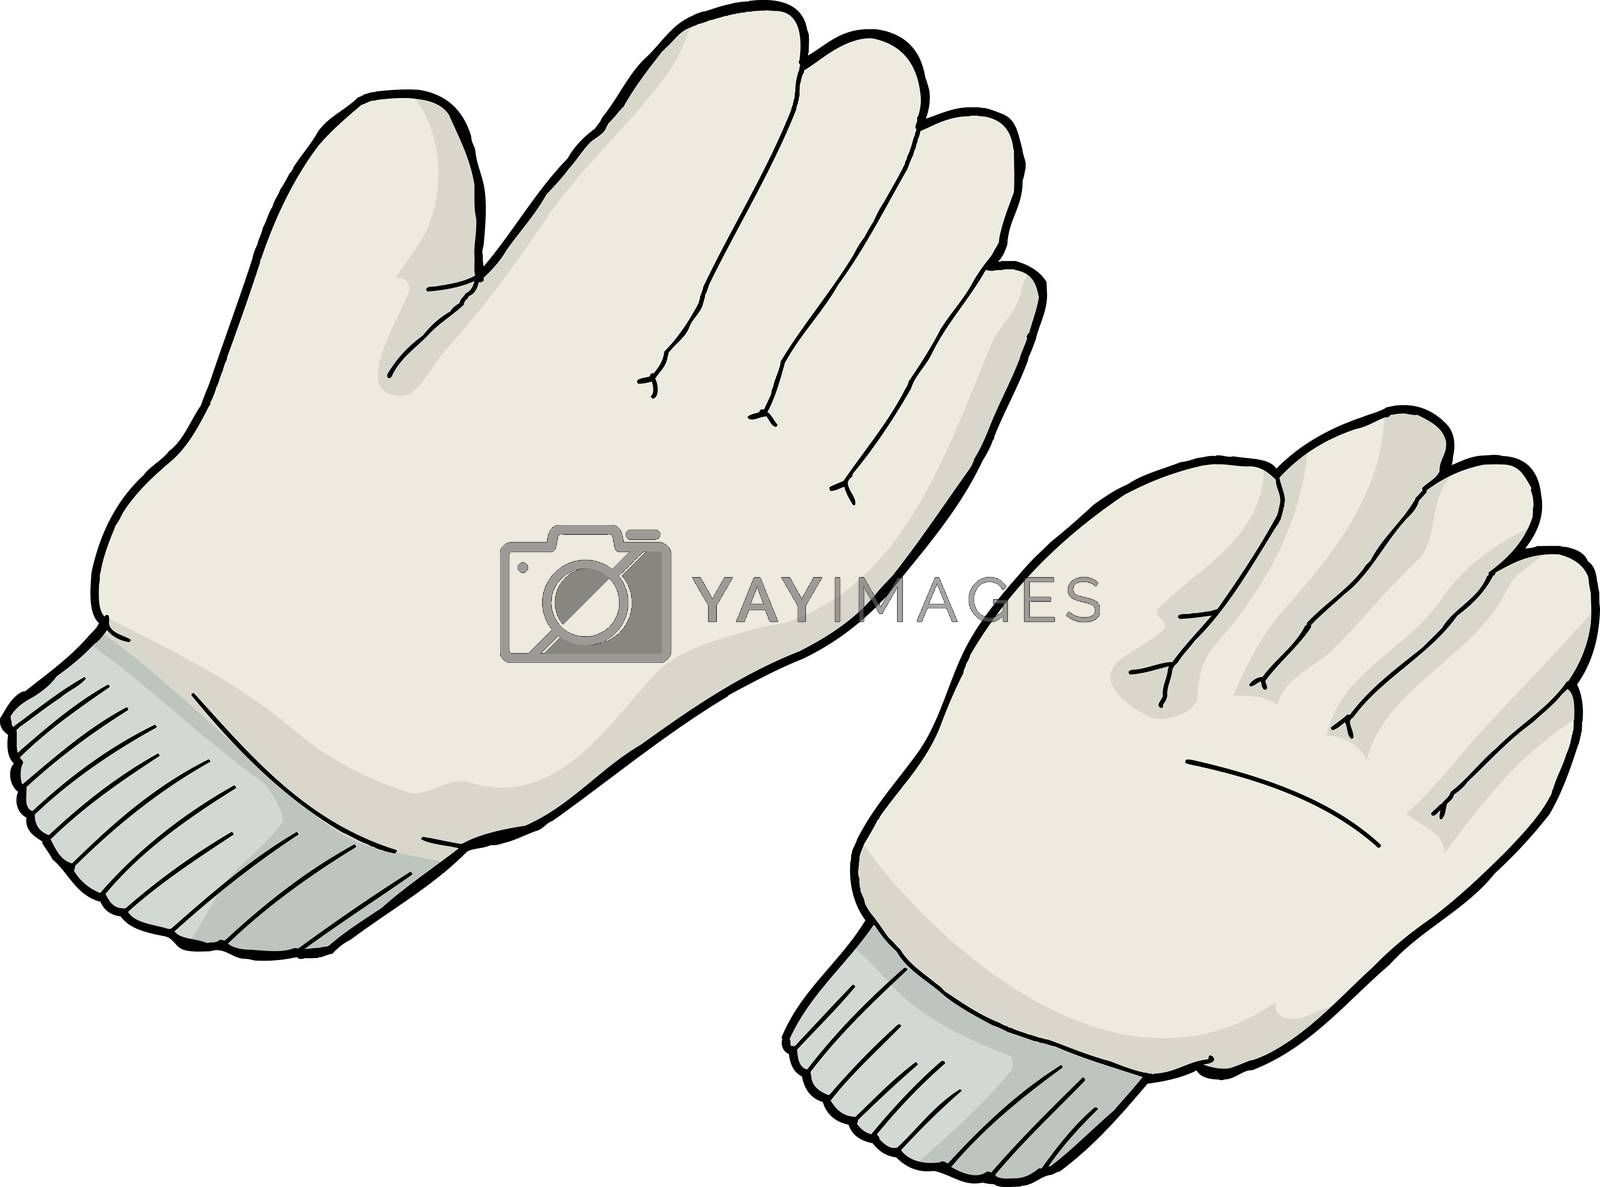 Royalty free image of Generic Work Gloves by TheBlackRhino